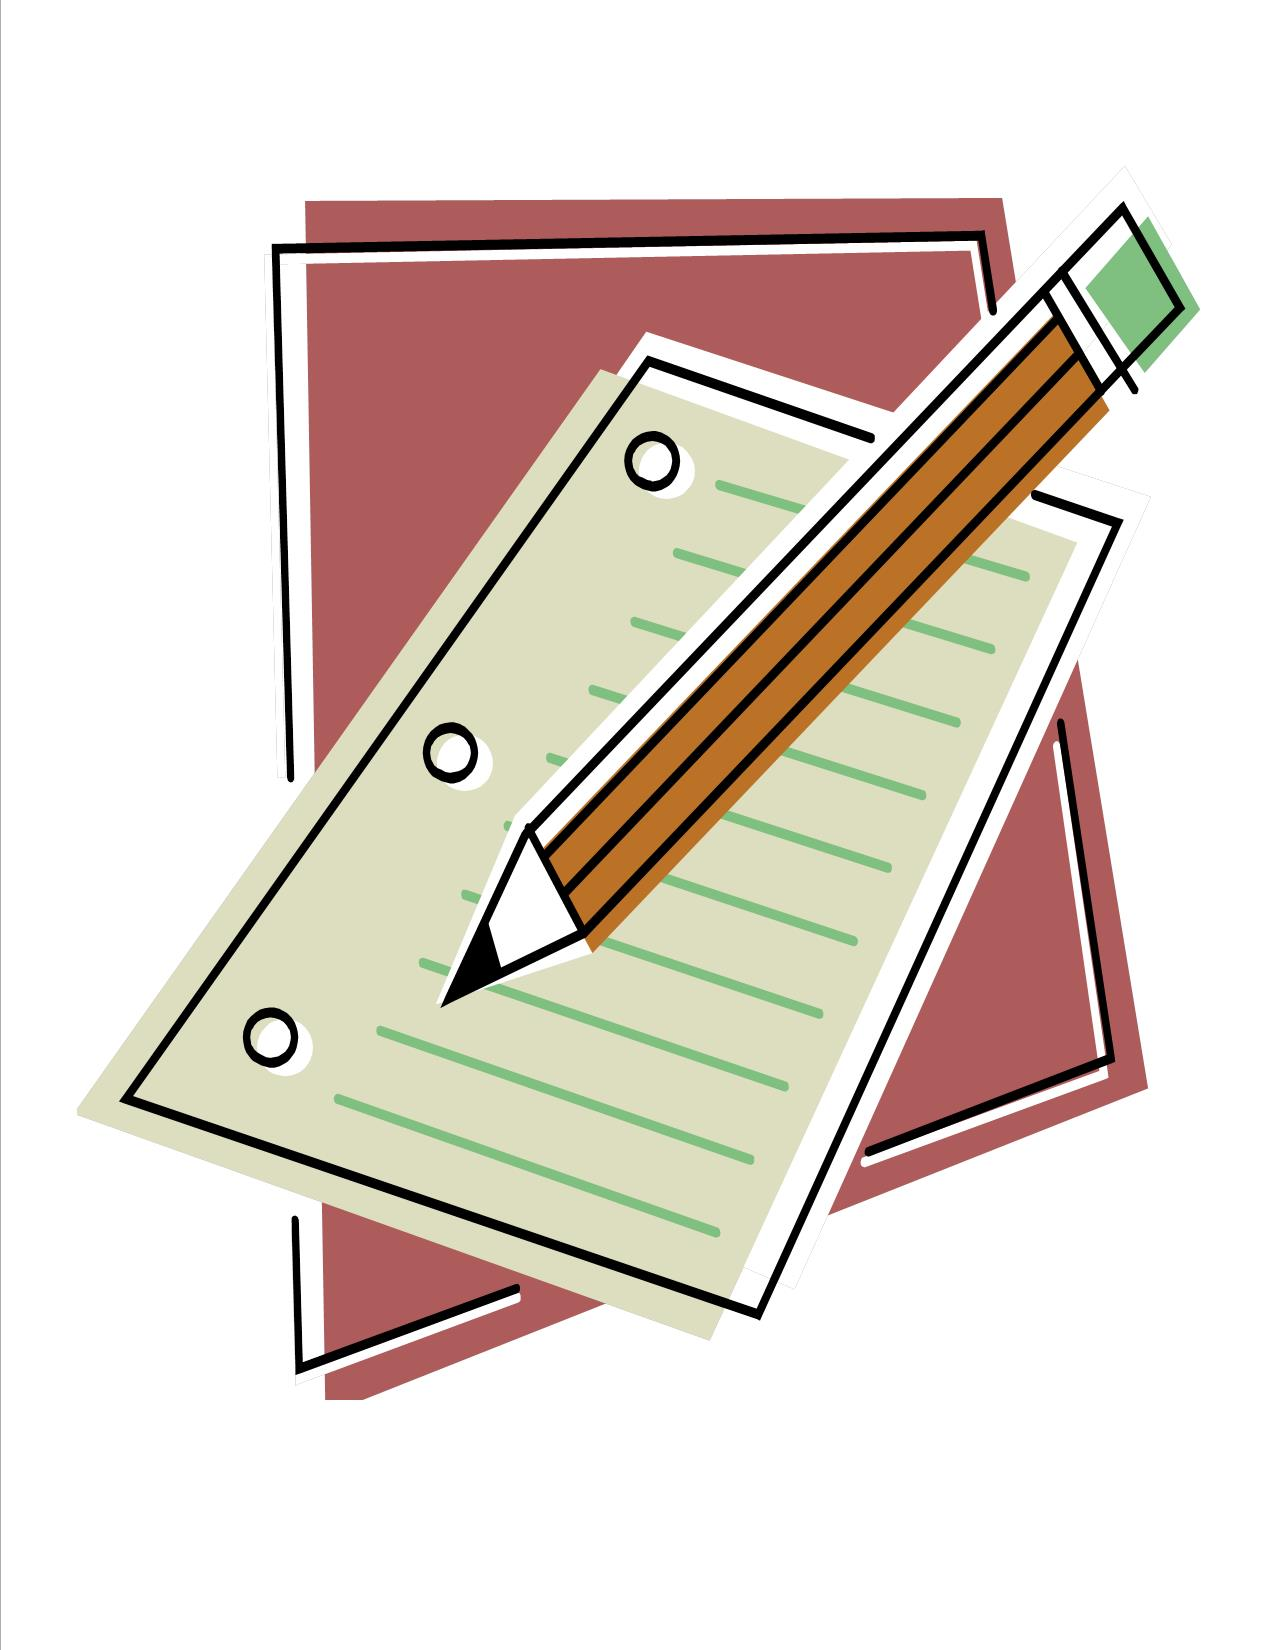 Pen And Paper Clip Art Cliparts And Othe-Pen and paper clip art cliparts and others inspiration 2-13